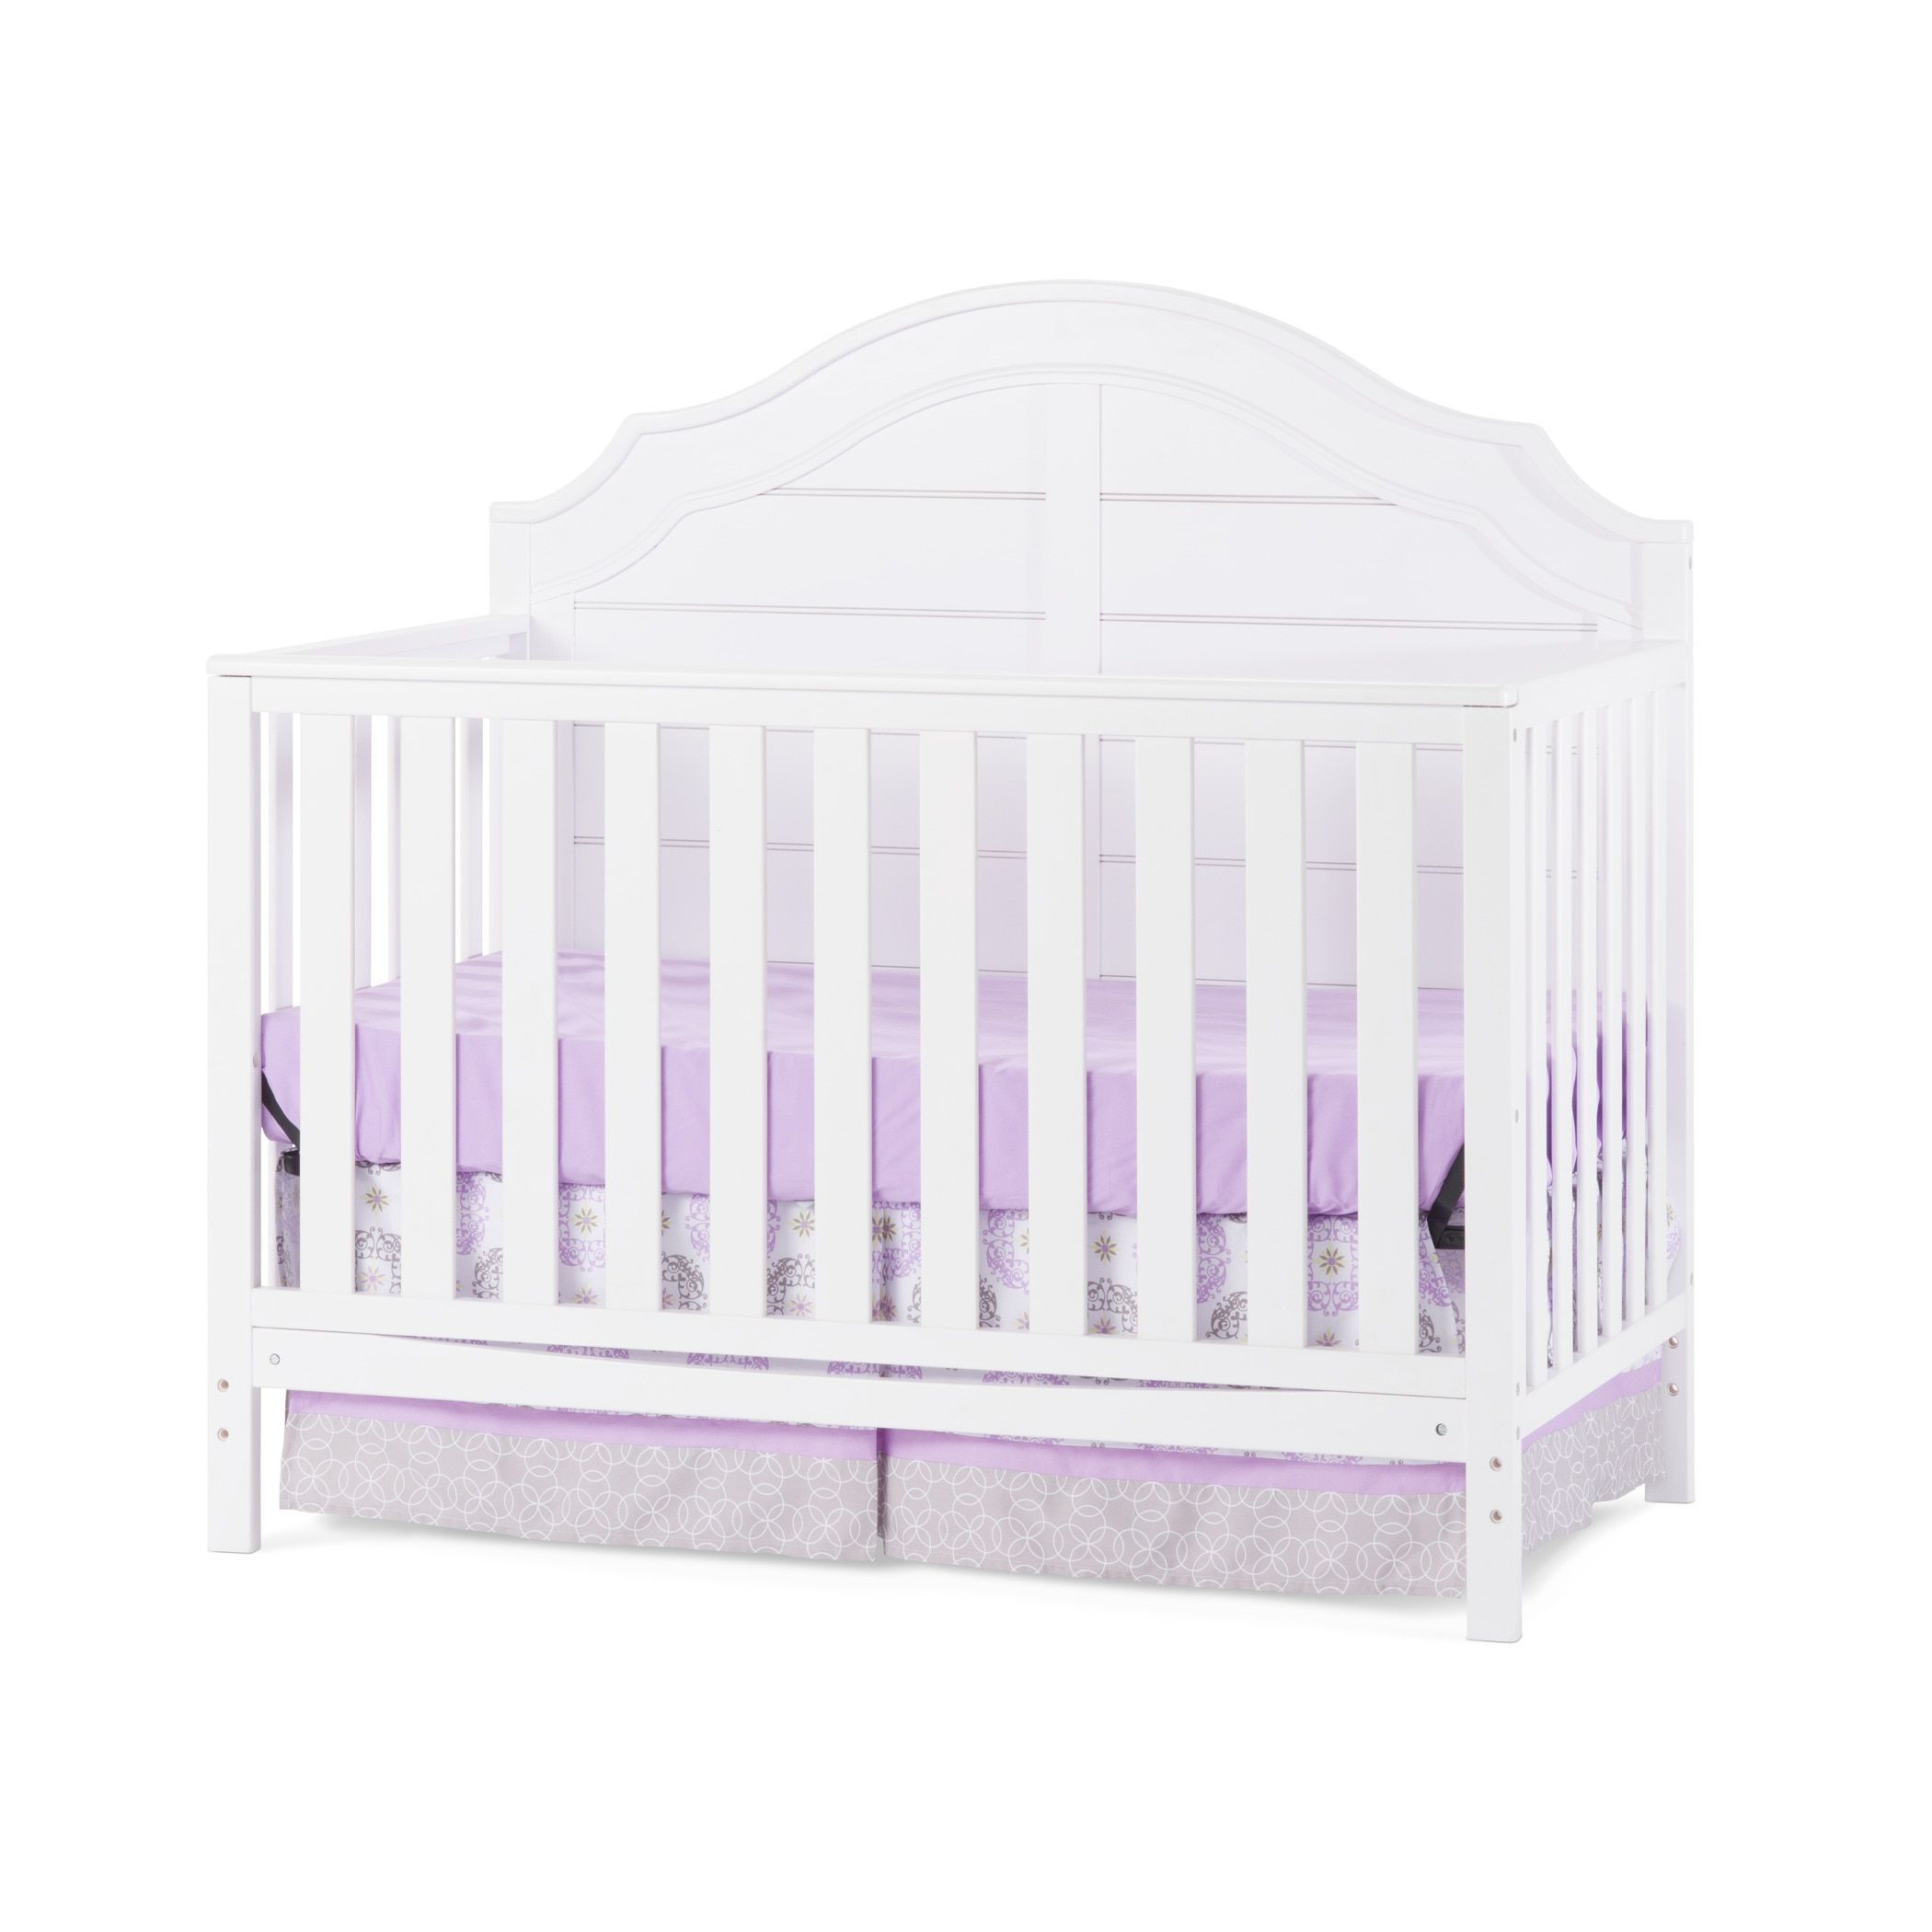 crib pdx camden cribs convertible kids wayfair baby in child craft reviews